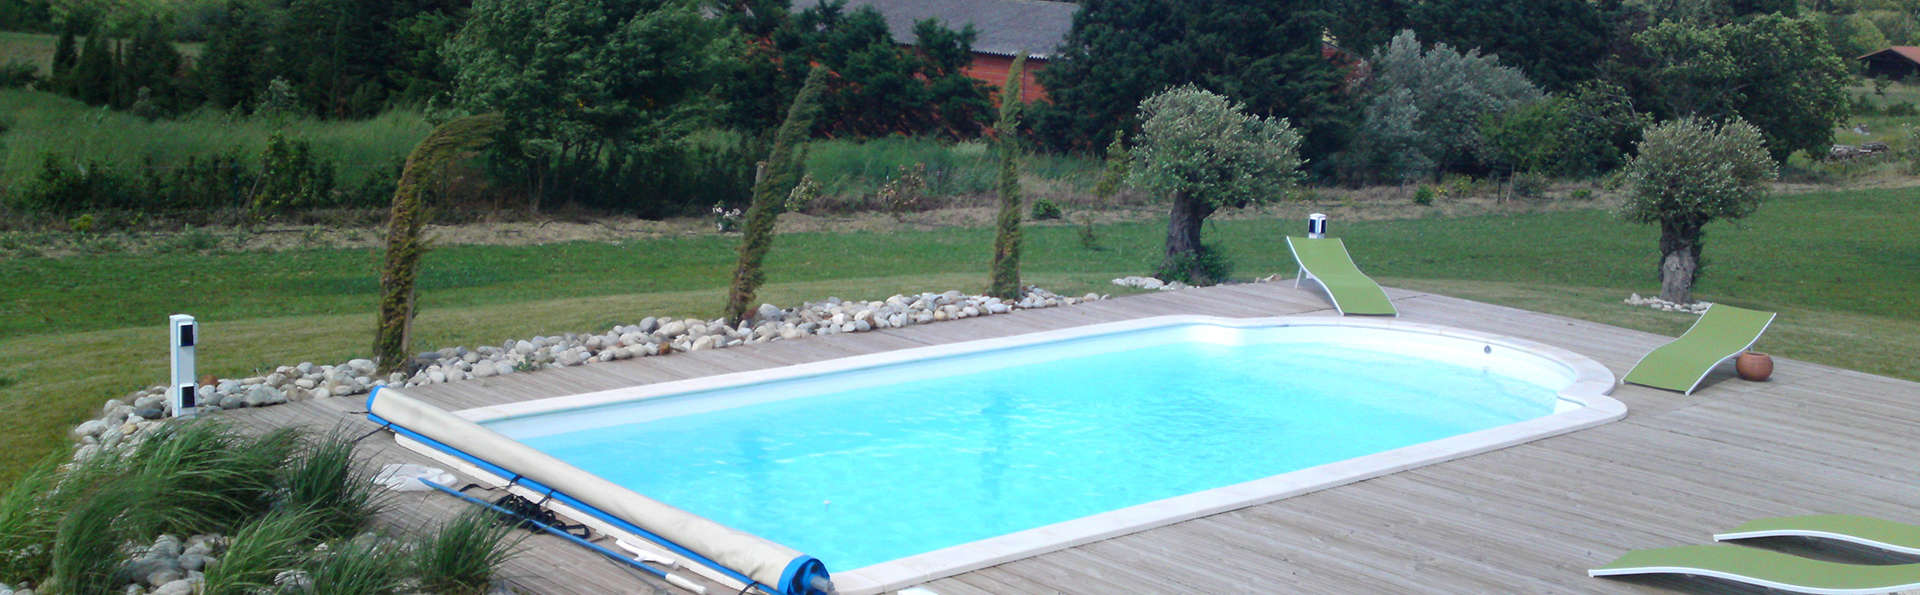 Week end chambre d 39 h te labastide en val avec 1 acc s au for Week end chambre d hote de charme